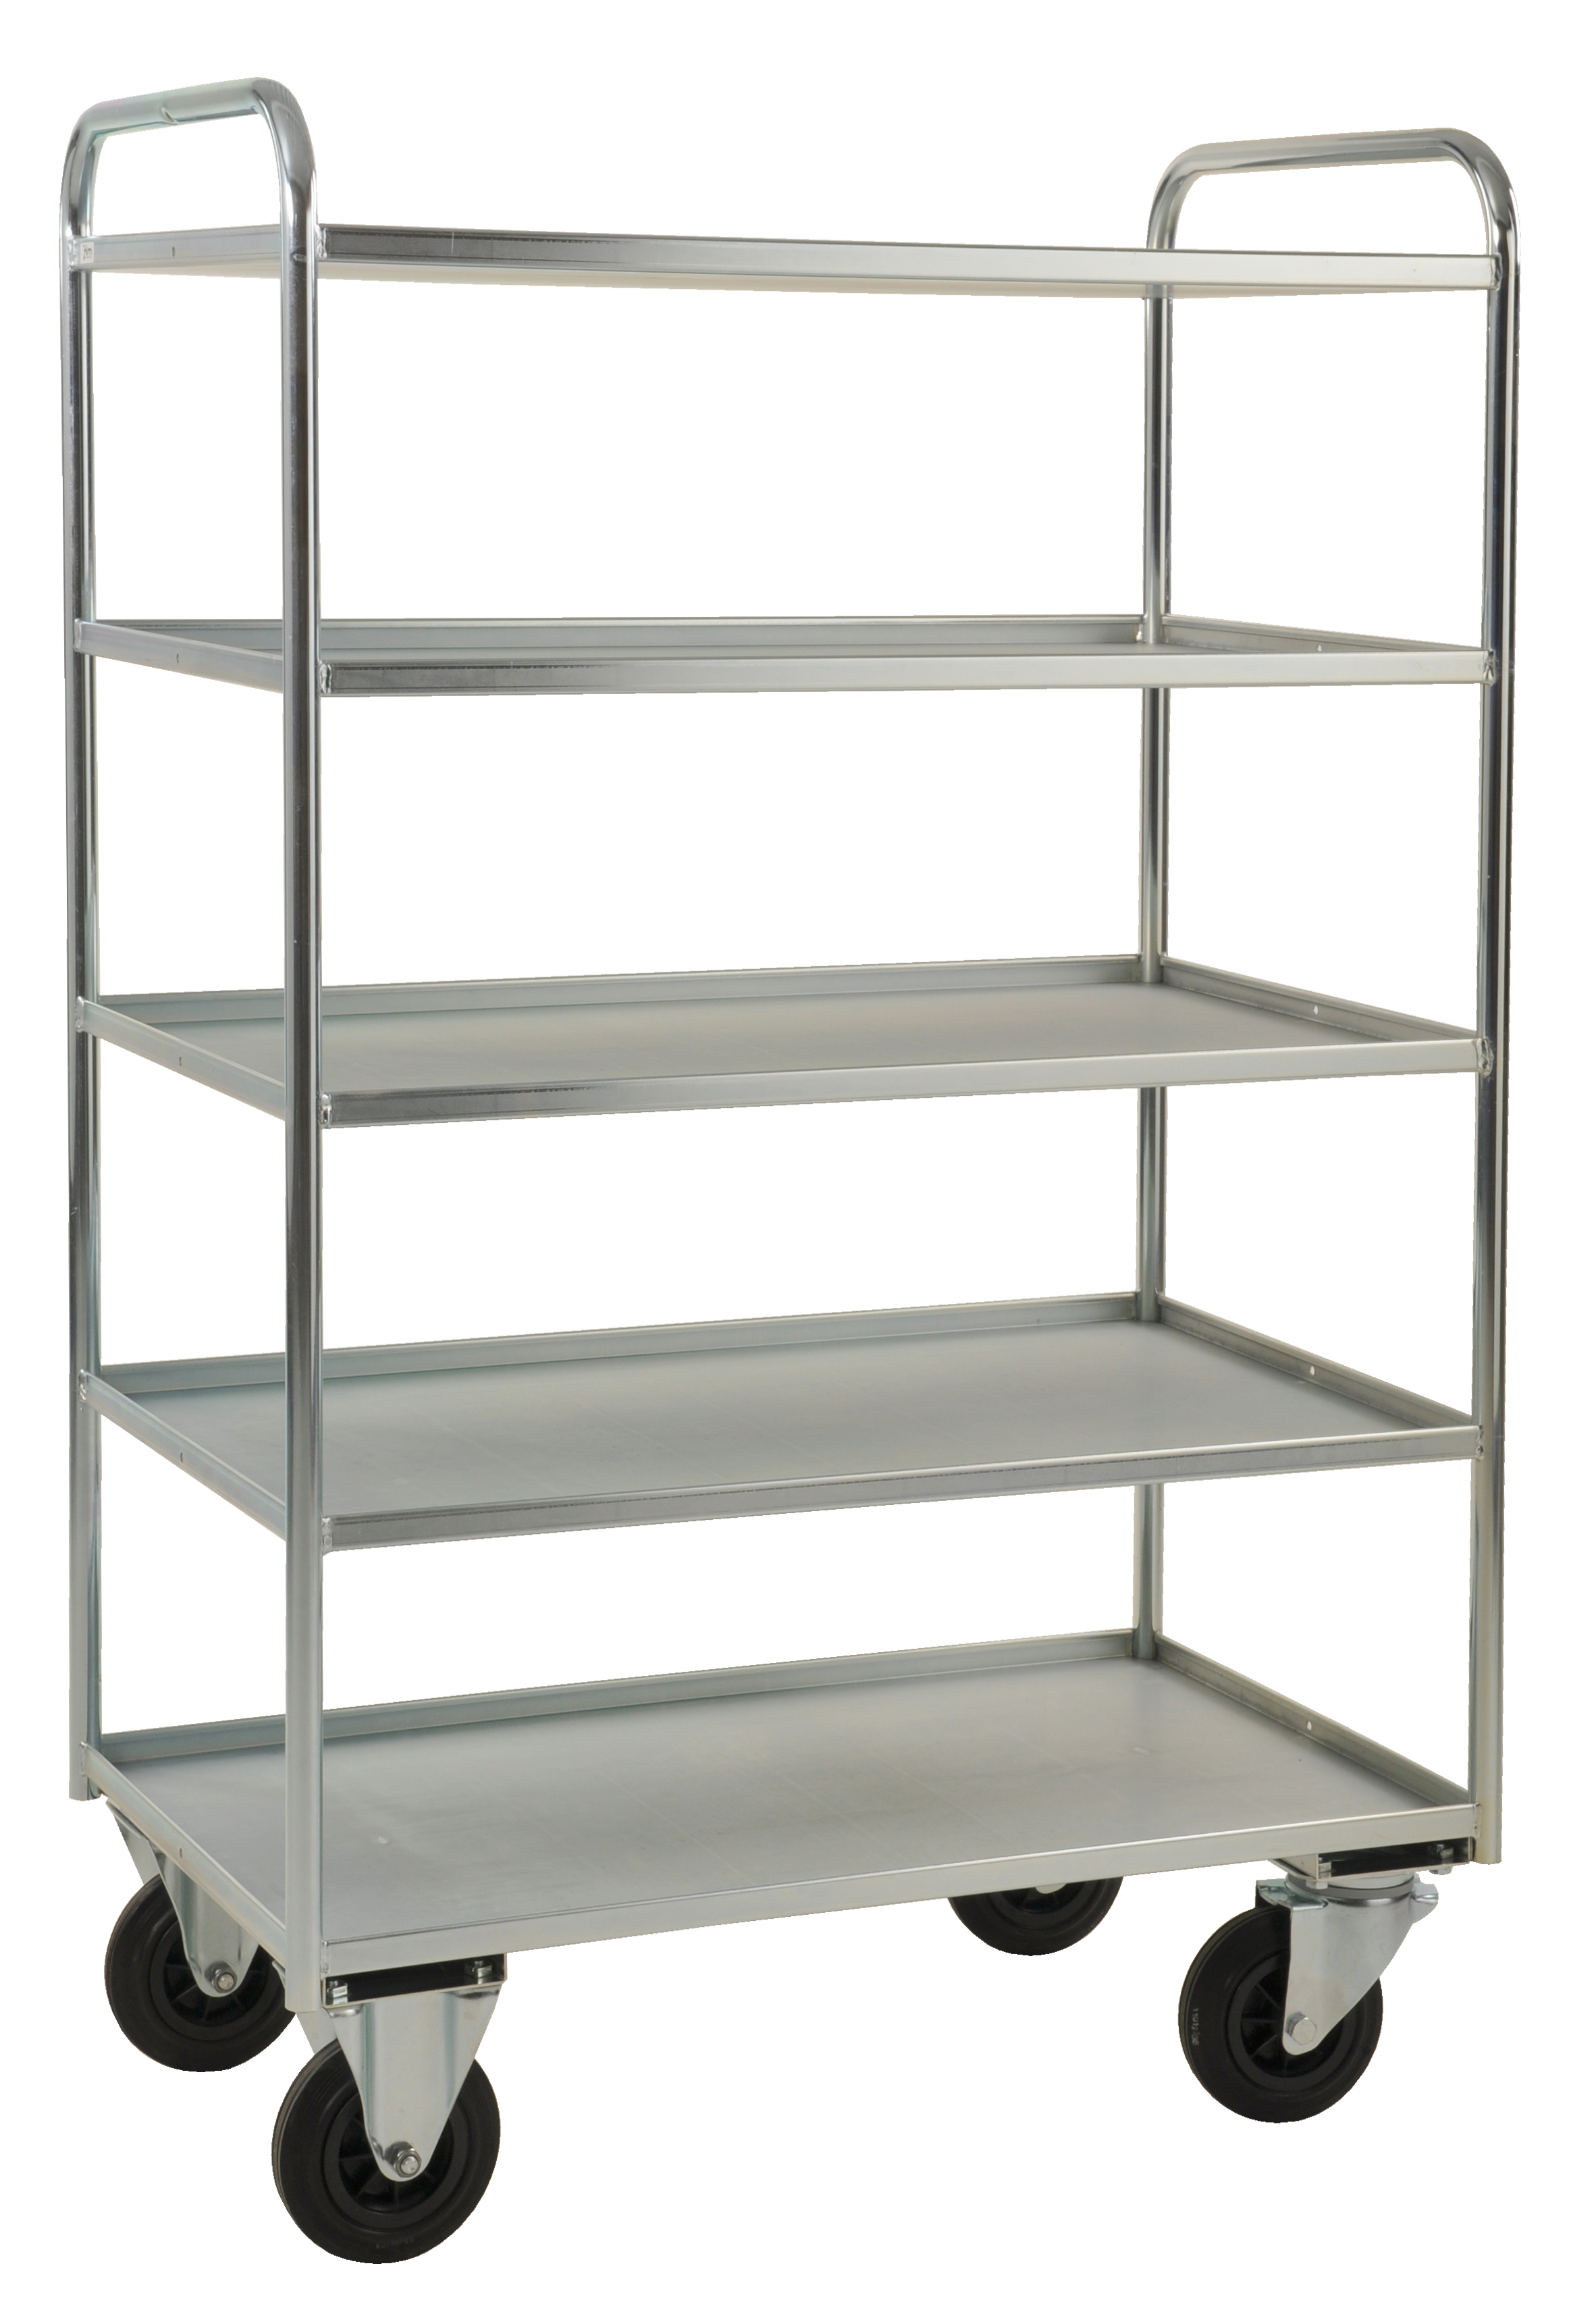 Shelf trolley 5 levels, fully welded KM4150-E